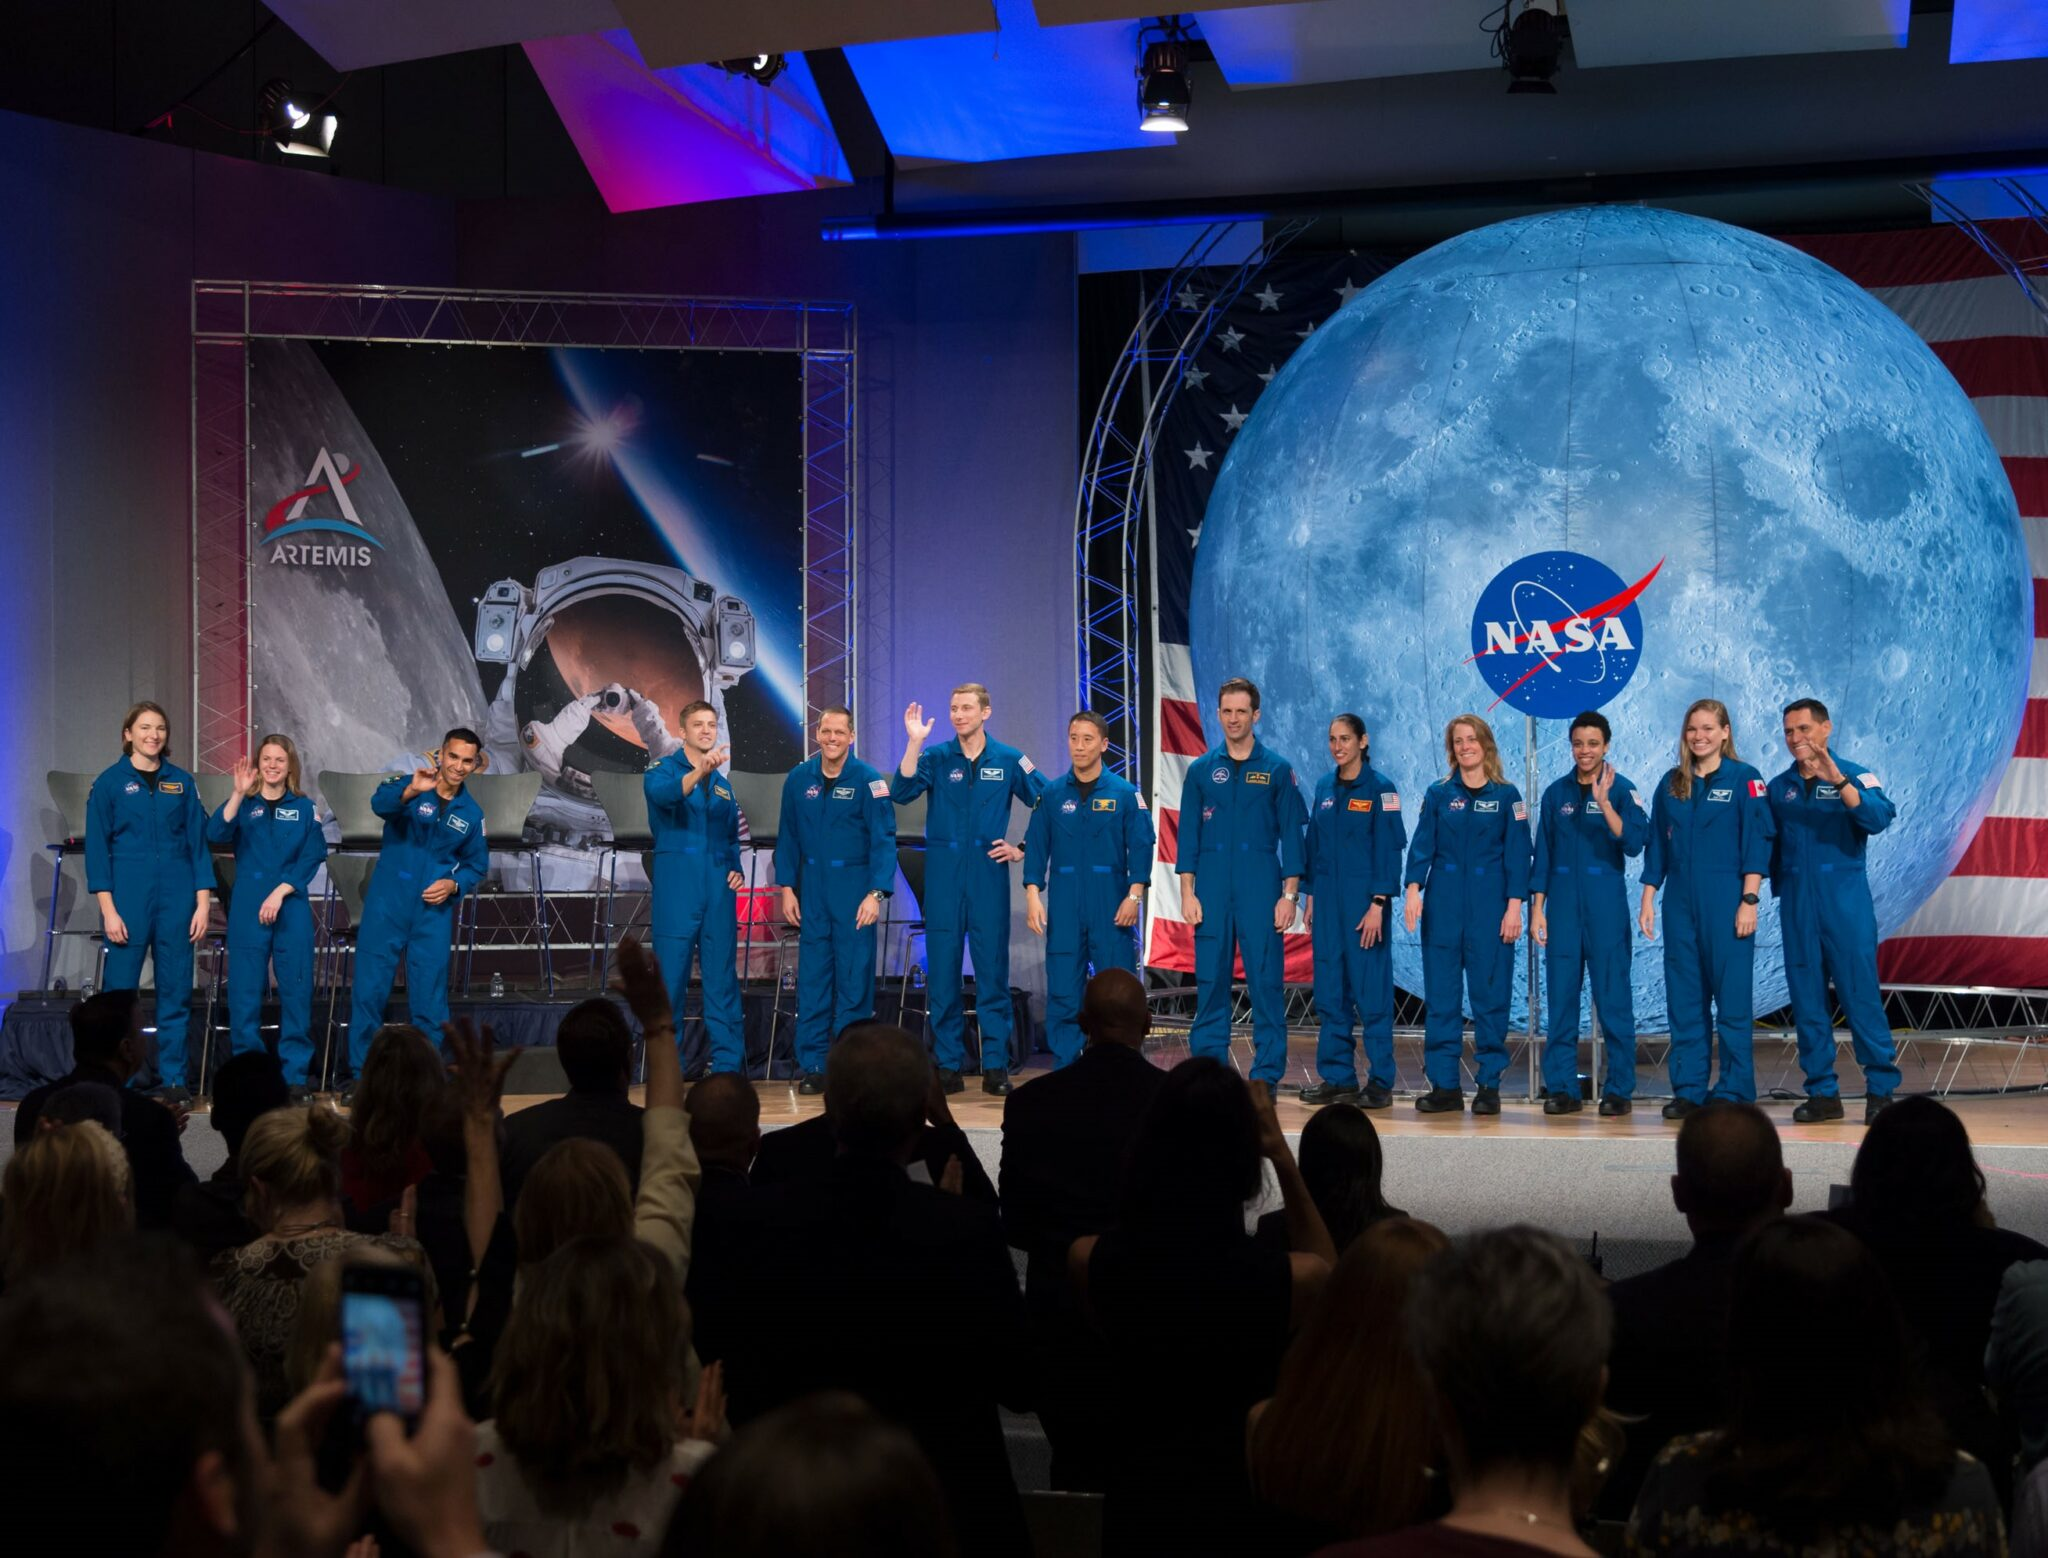 NASA kicks off a new space tradition with glitzy astronaut graduation ceremony